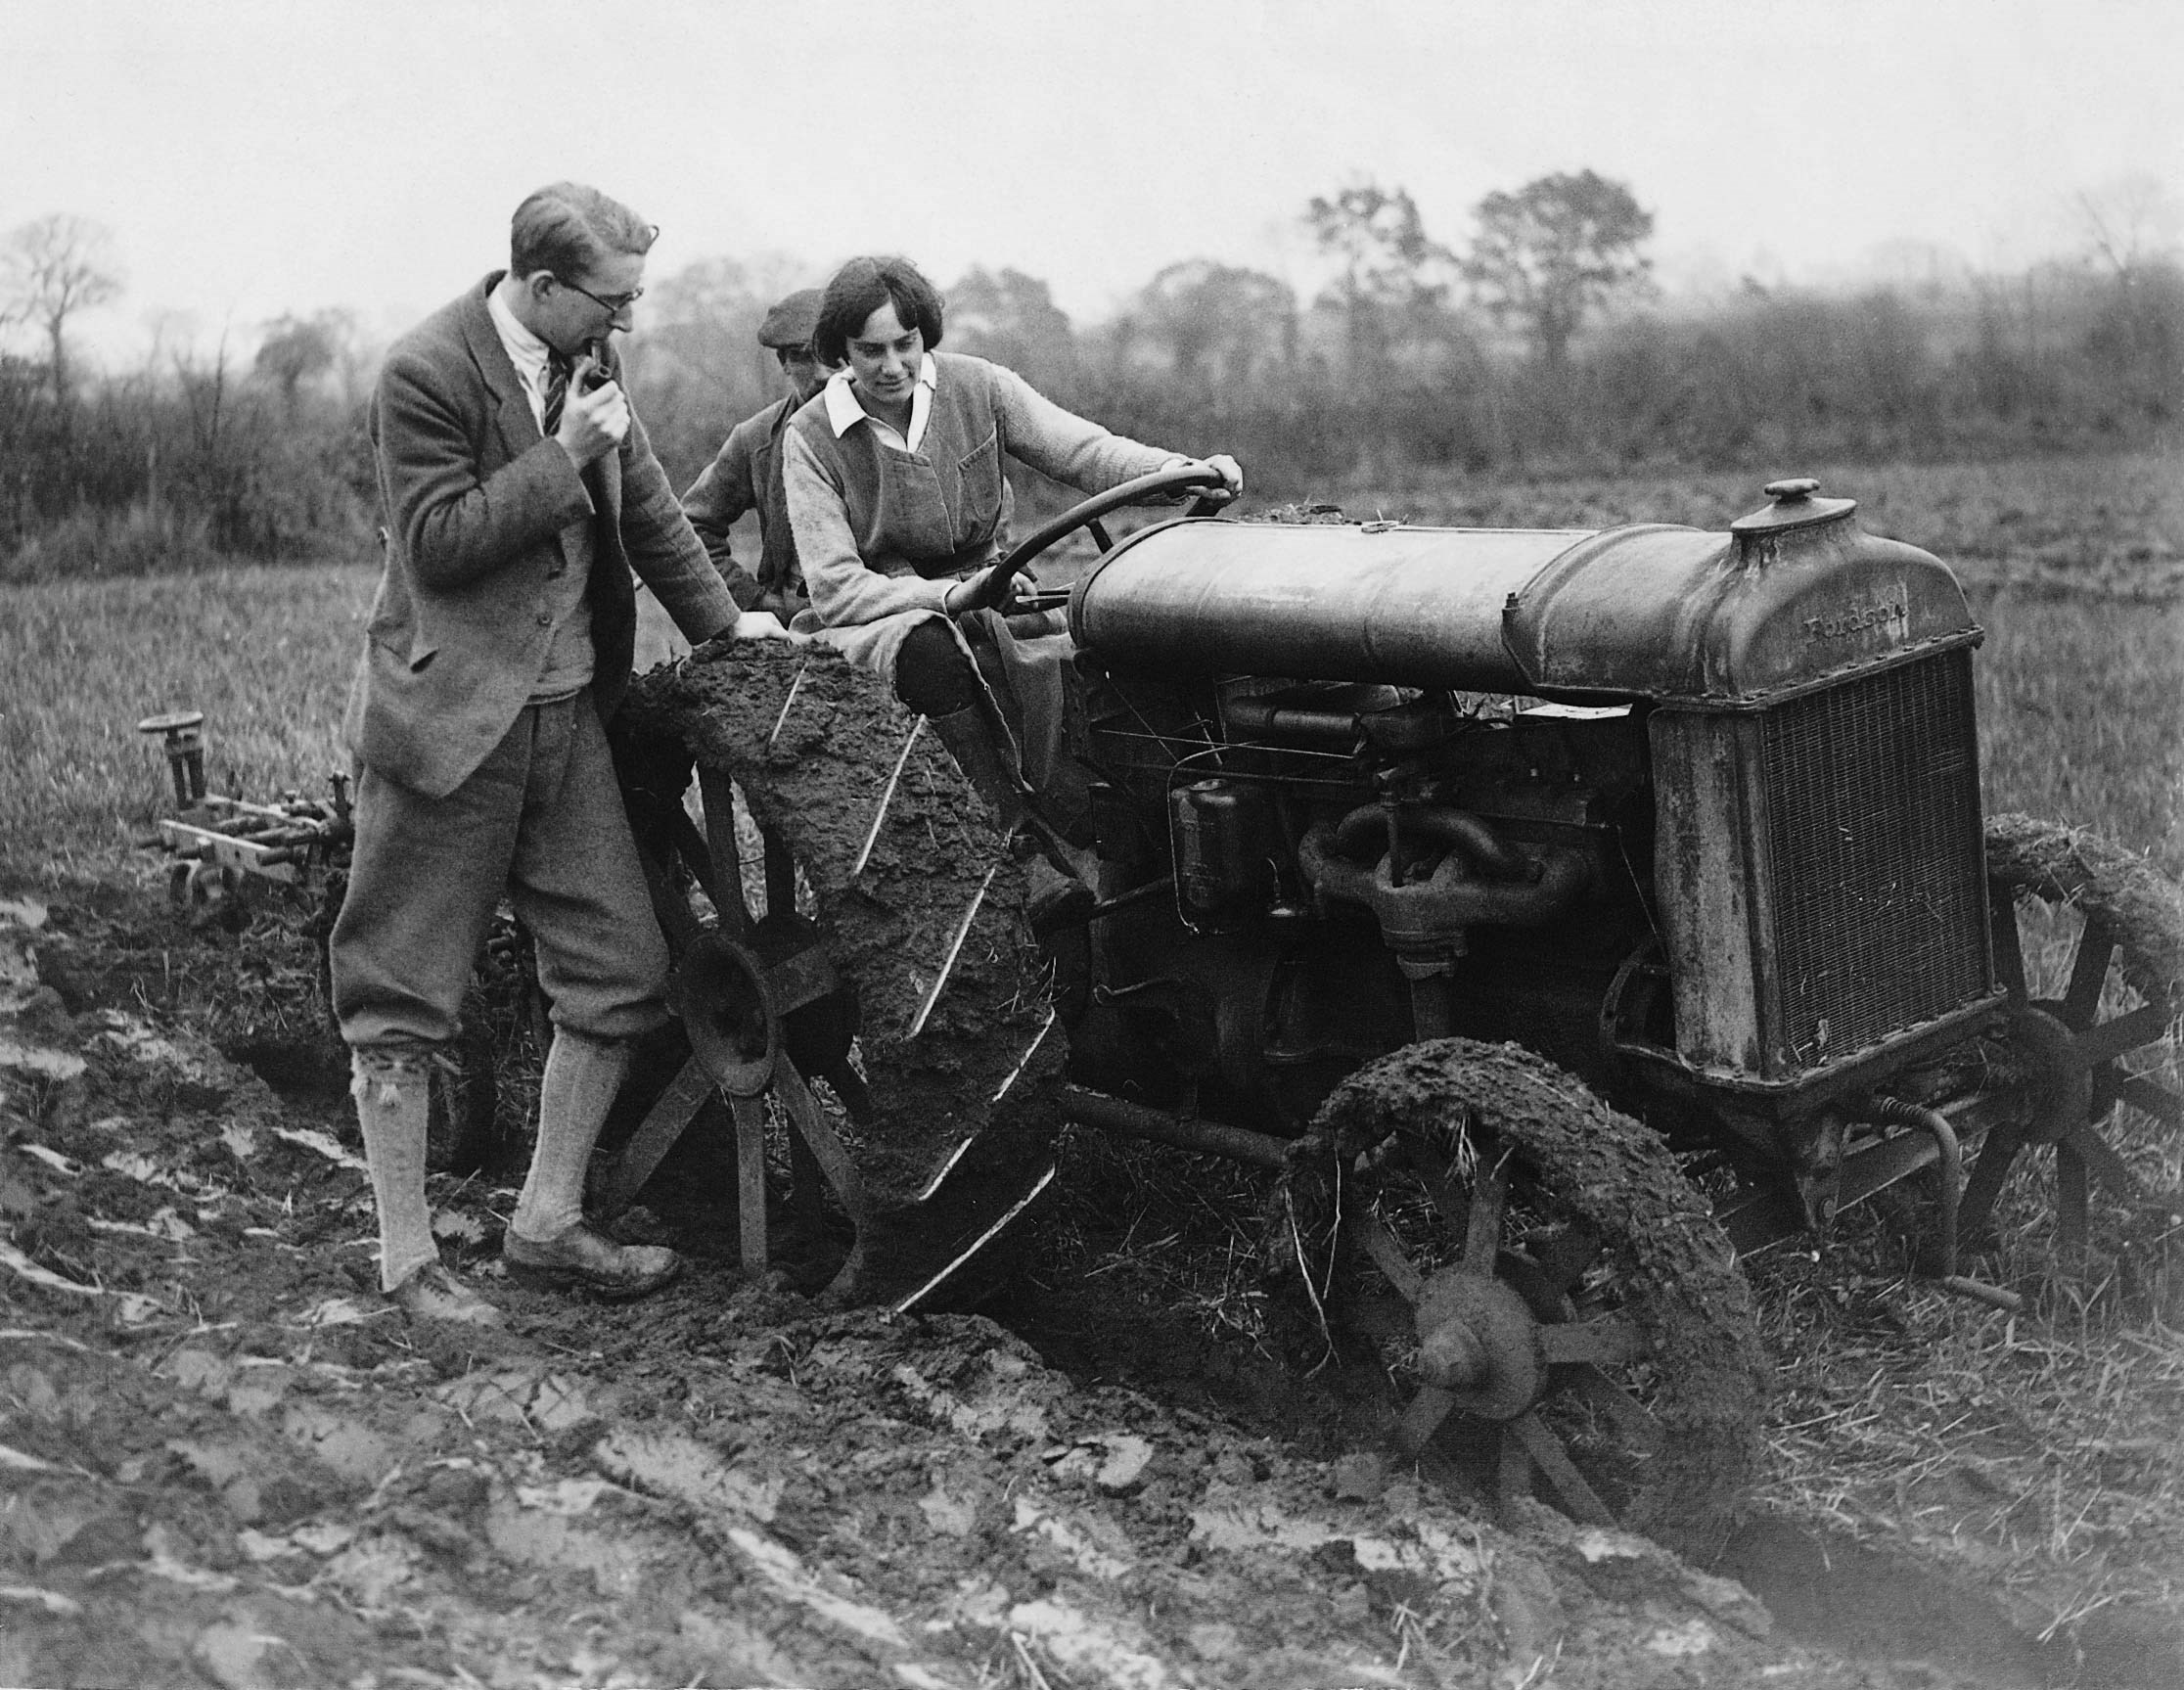 Eve driving tractor.jpg (1)